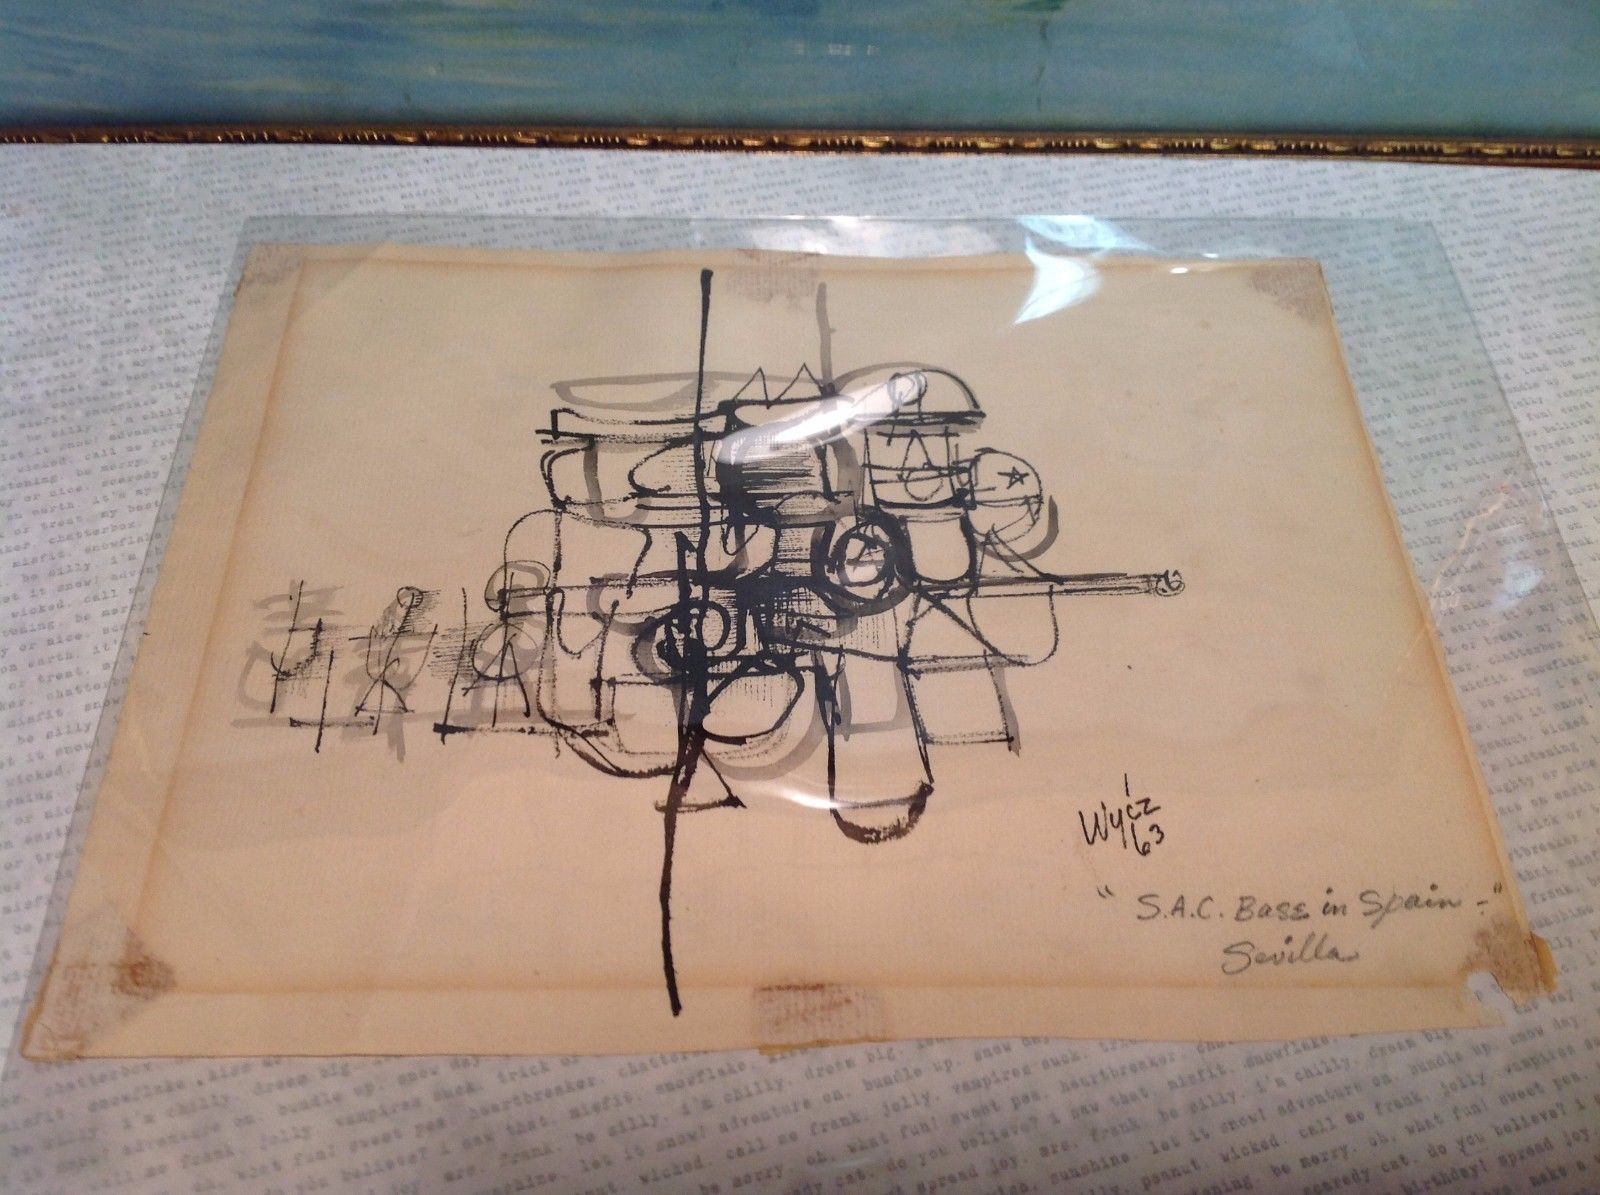 Abstract Military Art by Wycz circa 1963